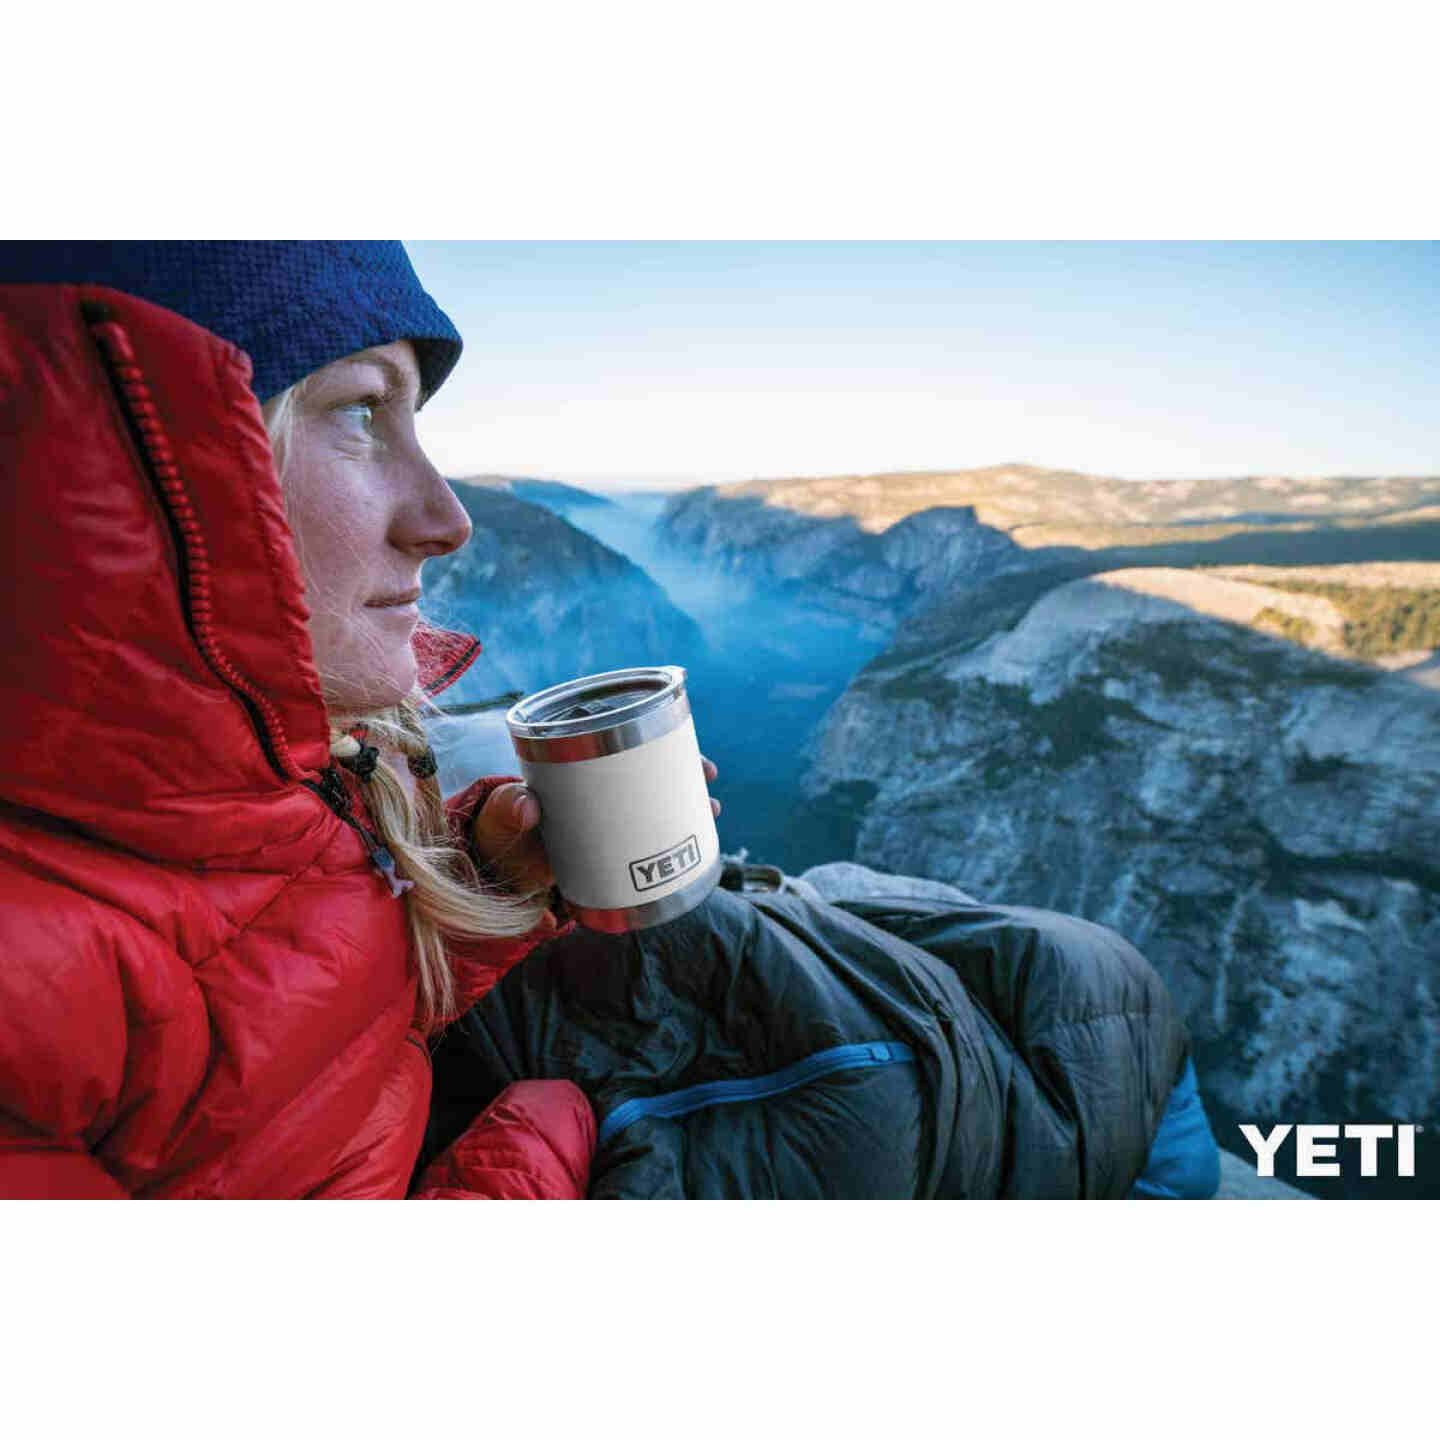 Yeti Rambler Lowball 10 Oz. White Stainless Steel Insulated Tumbler Image 2